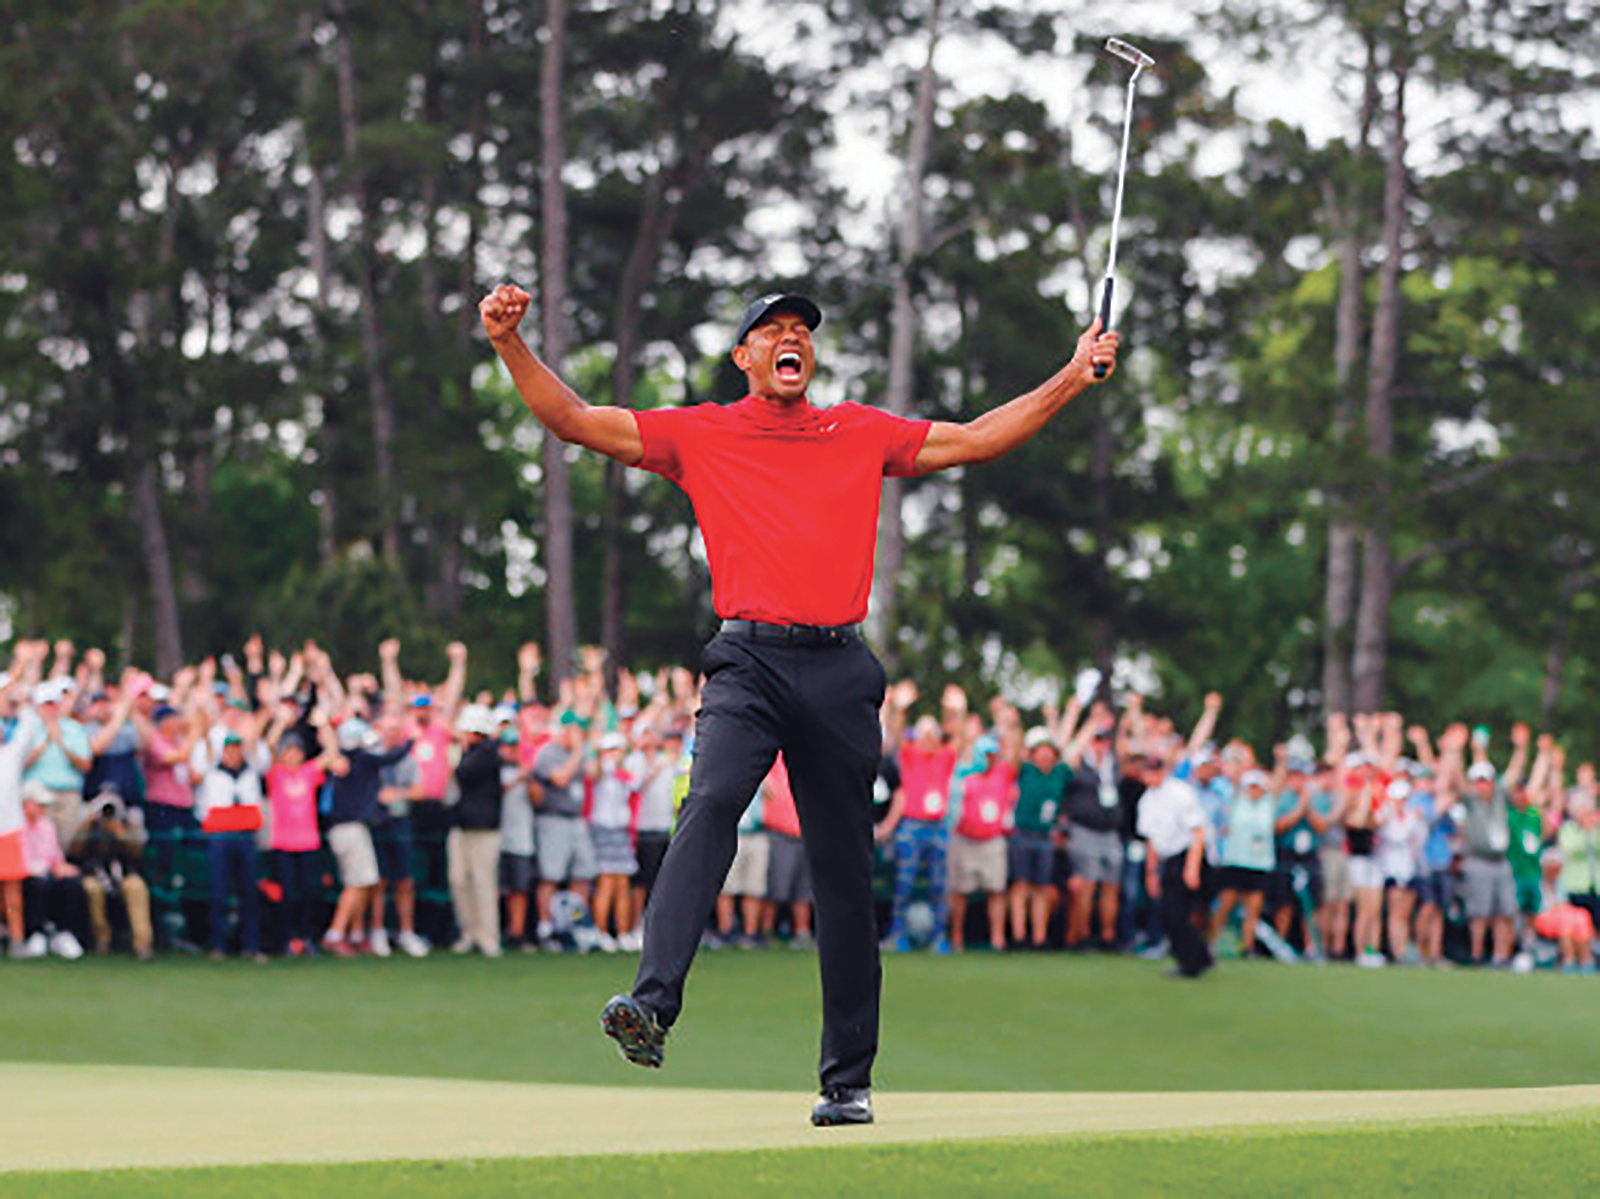 2019 Masters champ Tiger Woods completed arguably the greatest sporting comeback of all time as he put on the green jacket for the 5th time in his career. #CNN #News